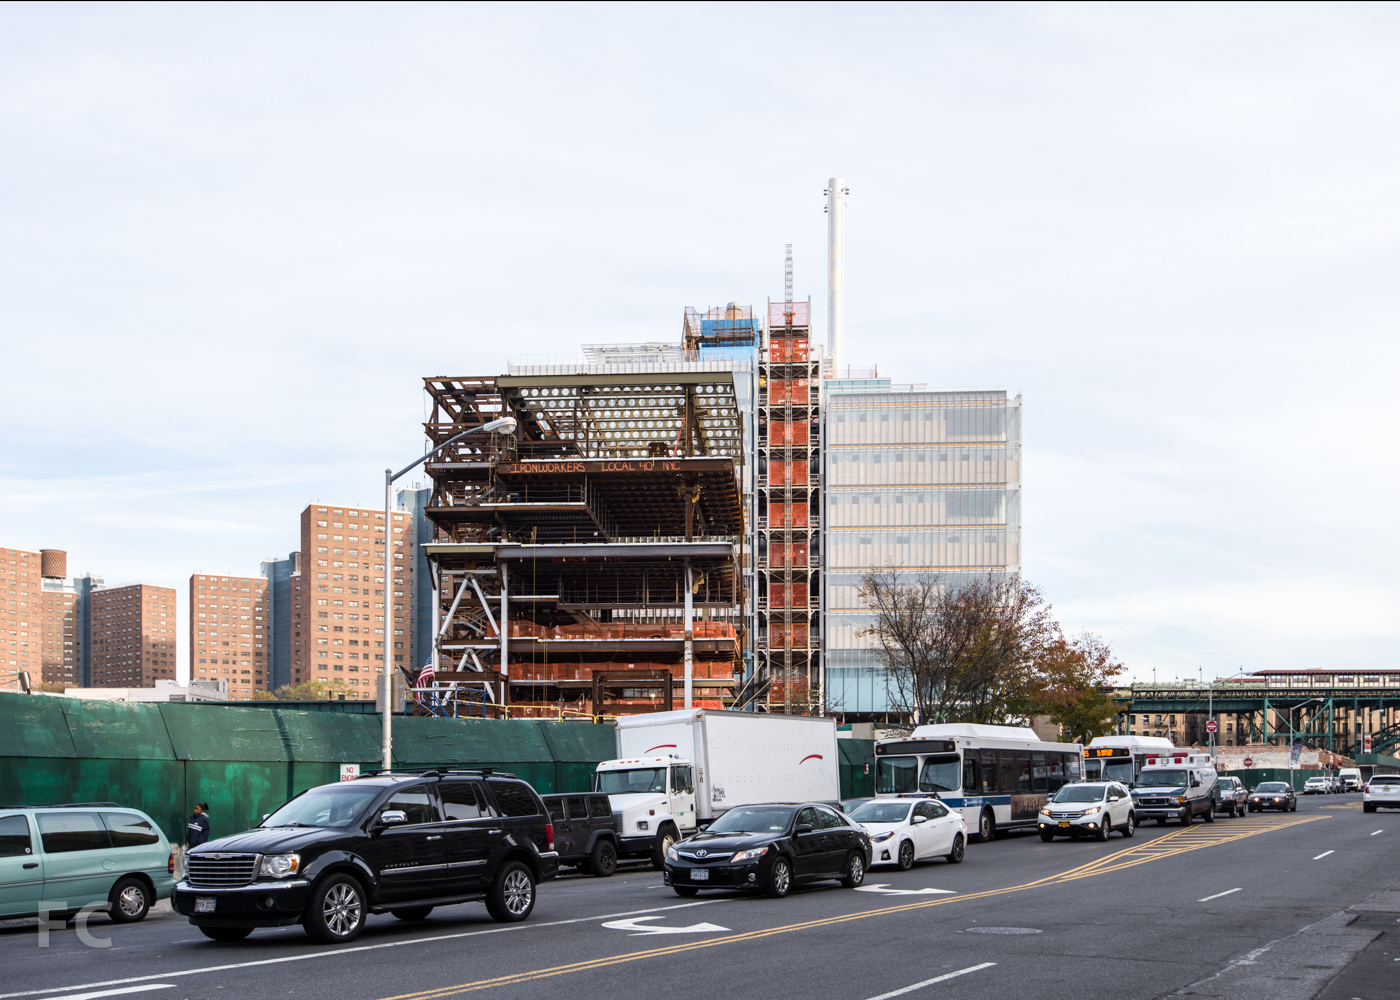 West facade  of the Science Center (right) and Center for the Arts (left) from West 125th Street.